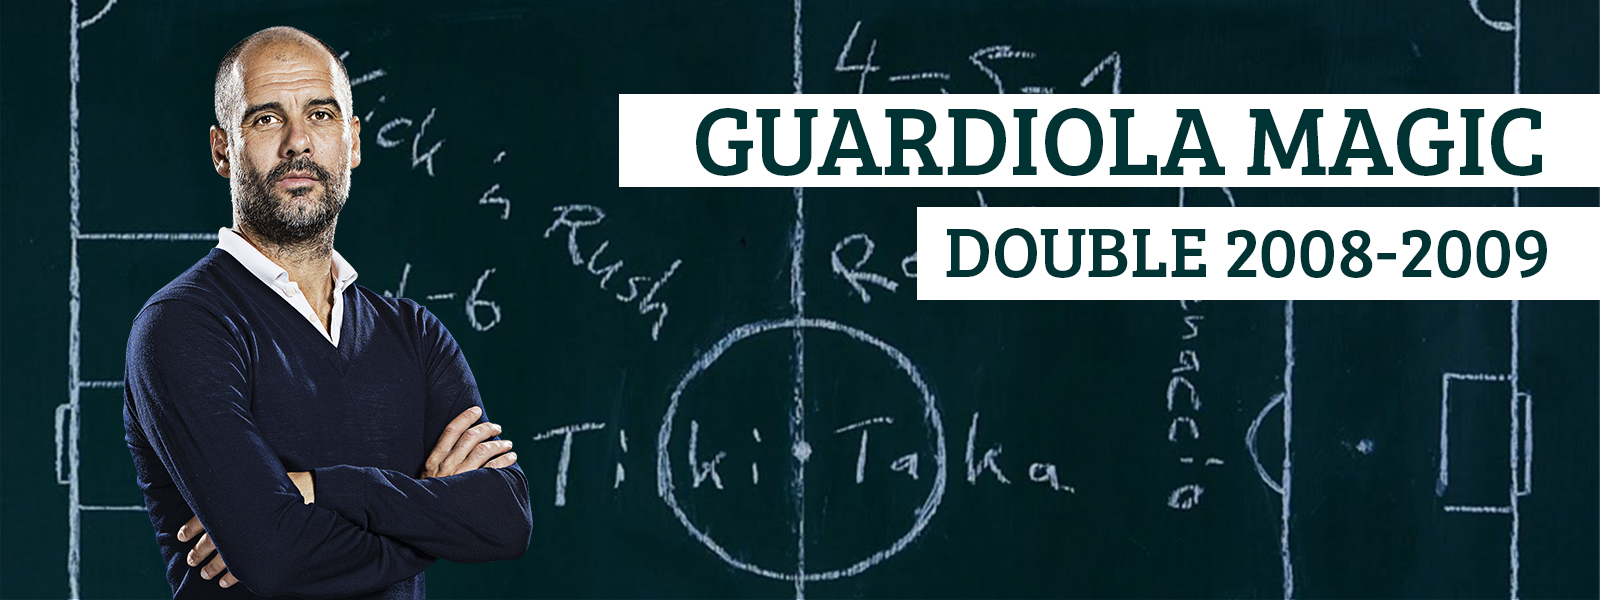 Manager Pep Guardiola Magic Double 2008-2009